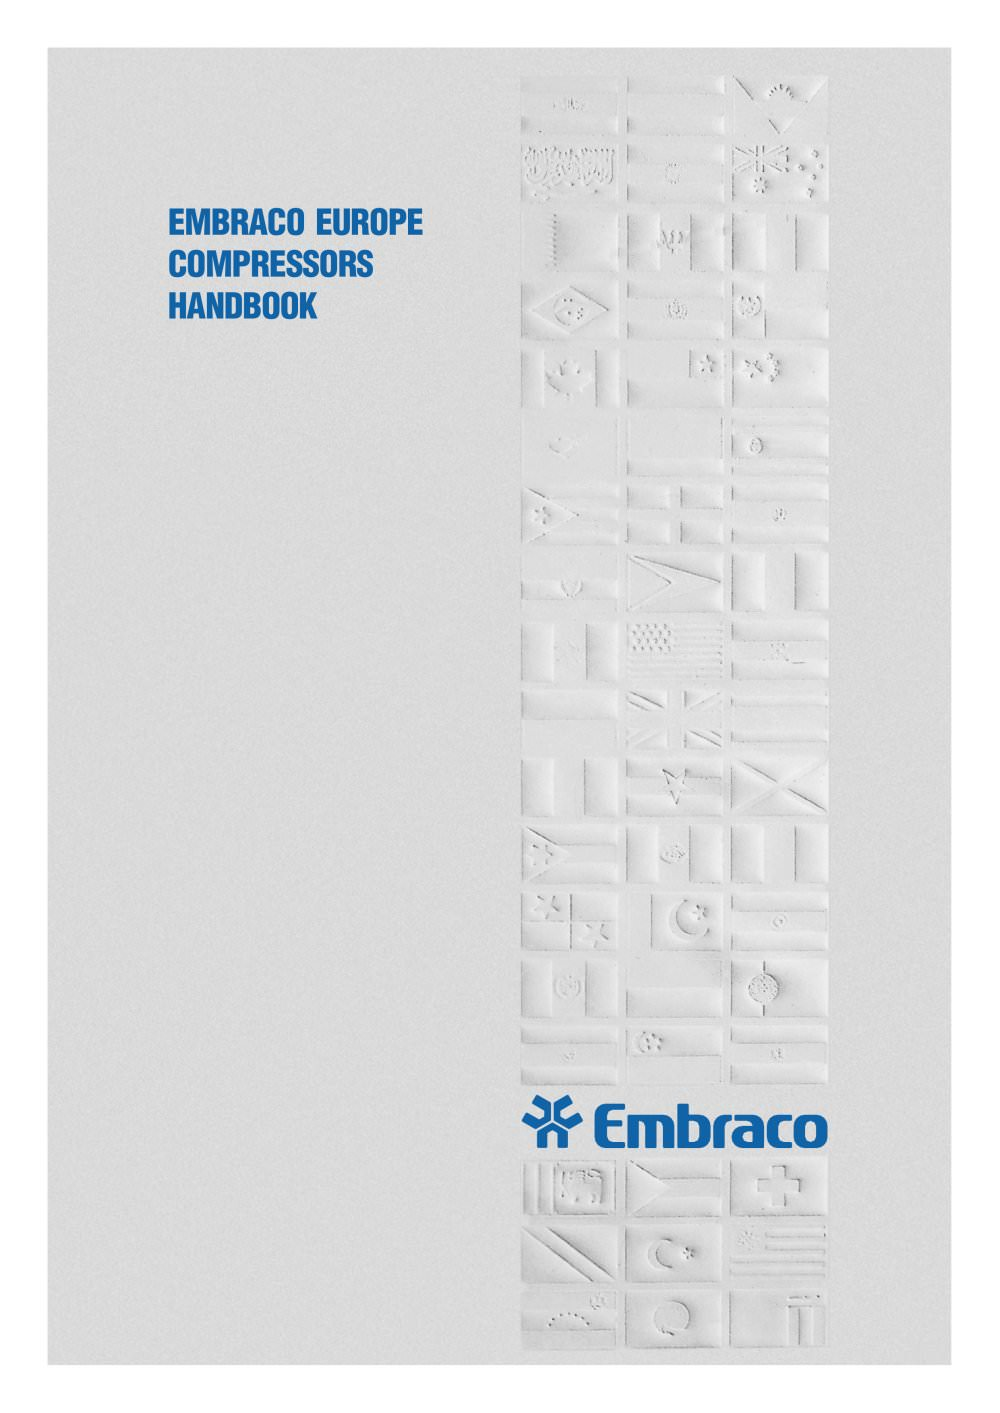 hight resolution of compressor handbook 1 100 pages